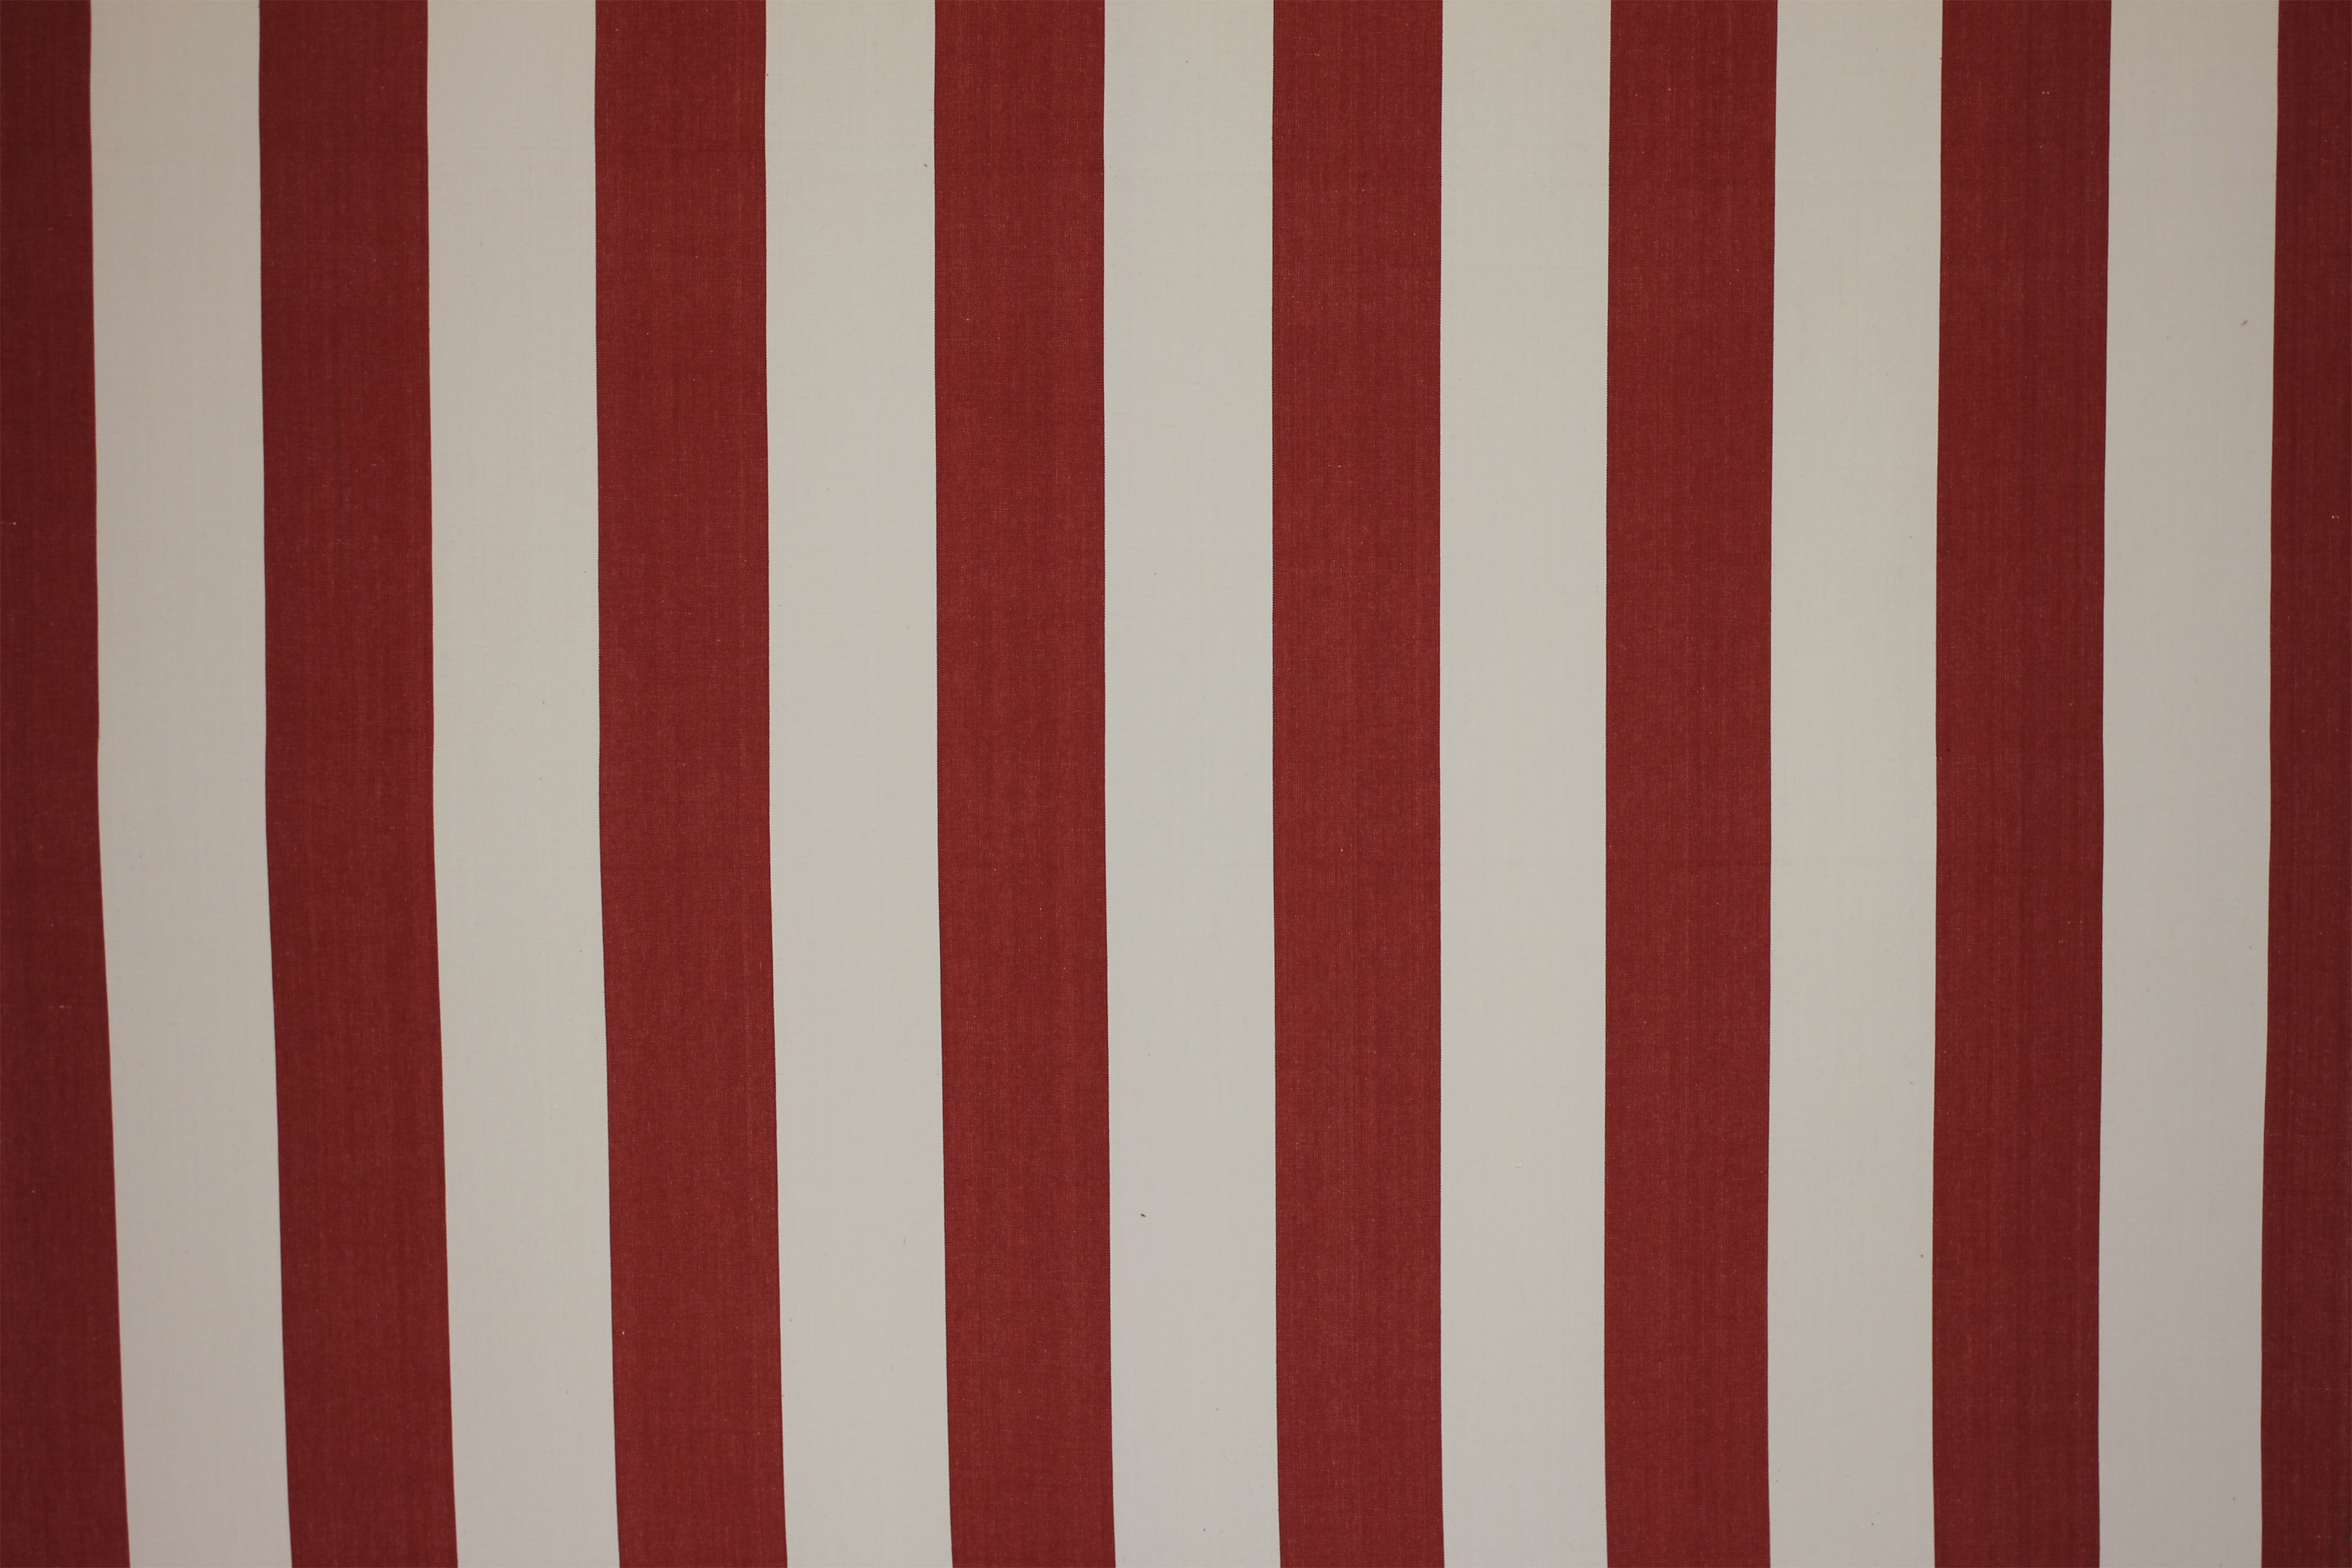 Red Striped Fabrics | Red Stripe Cotton Fabrics | Punch and Judy Stripe -  Juggling Stripes